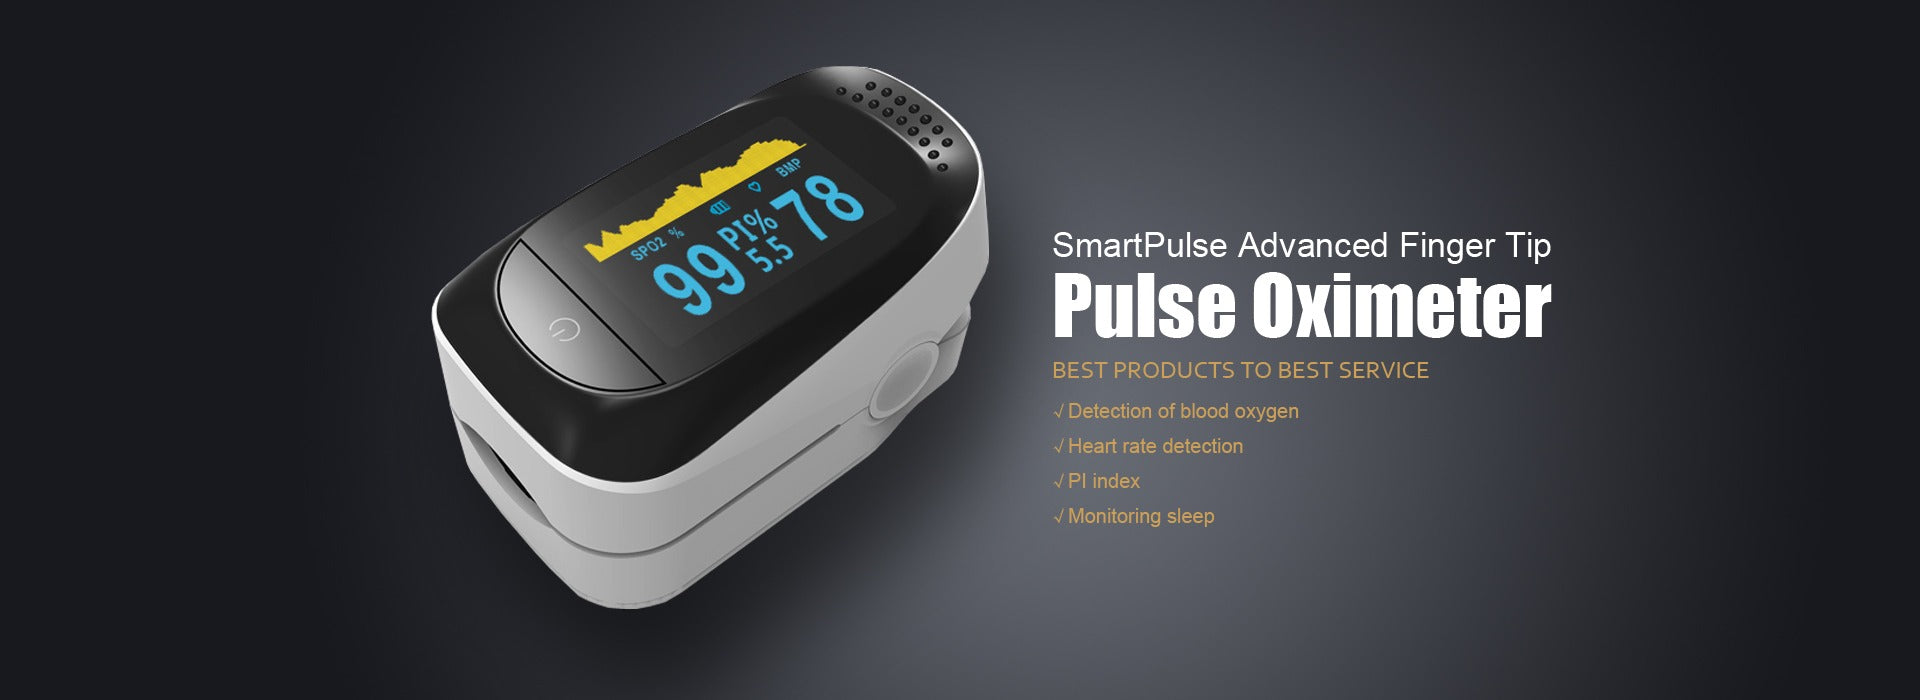 fingertip pulse oximeter OLED Display